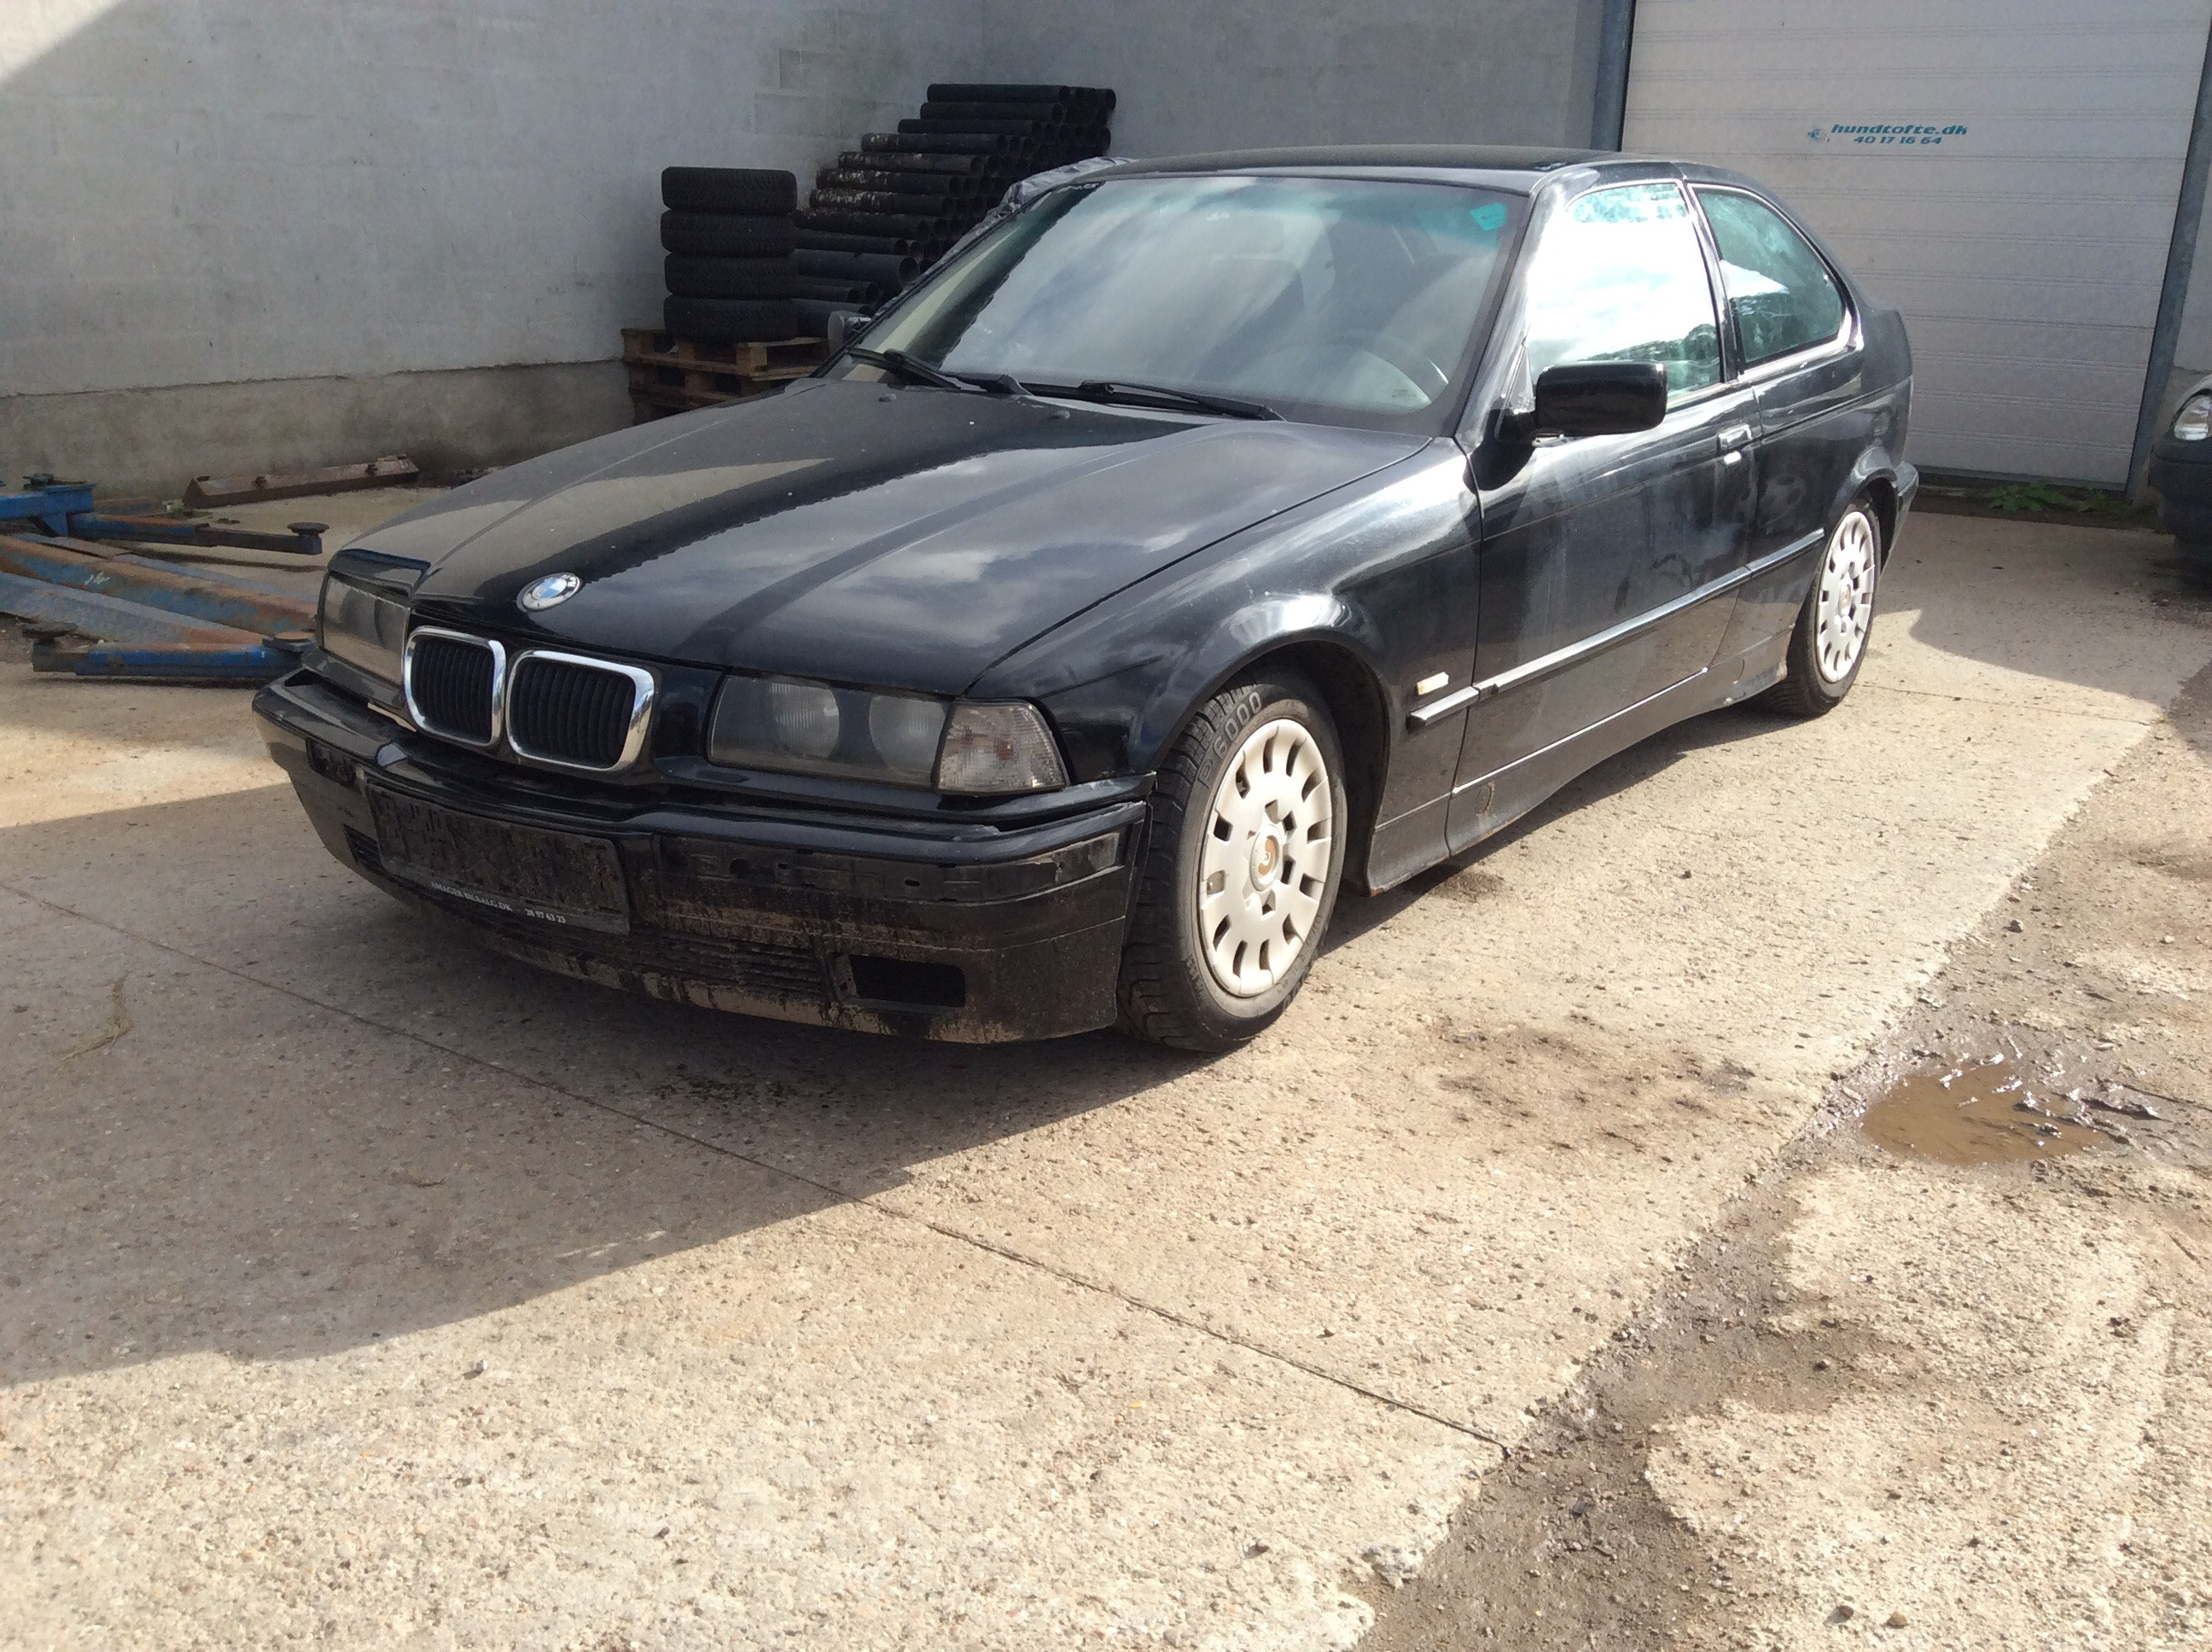 Reservedele,BMW 316I COMPACT 1999